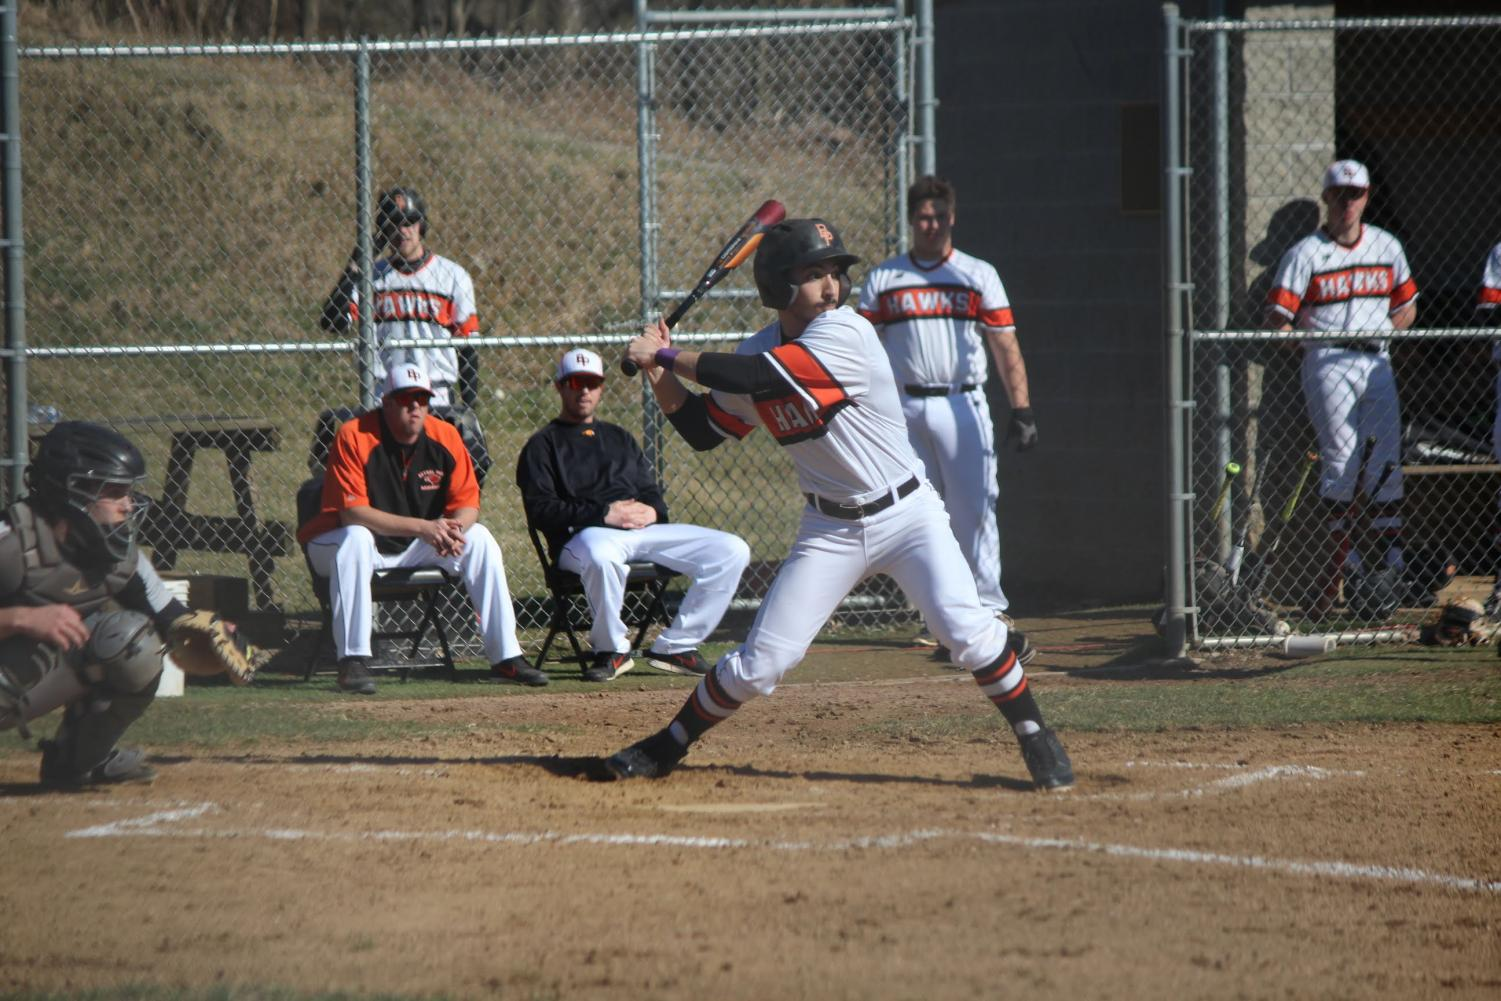 Anthony Strangis prepares to swing the bat during the Hawks' game vs. Pine Richland on March 27. The Hawks won 2-1.